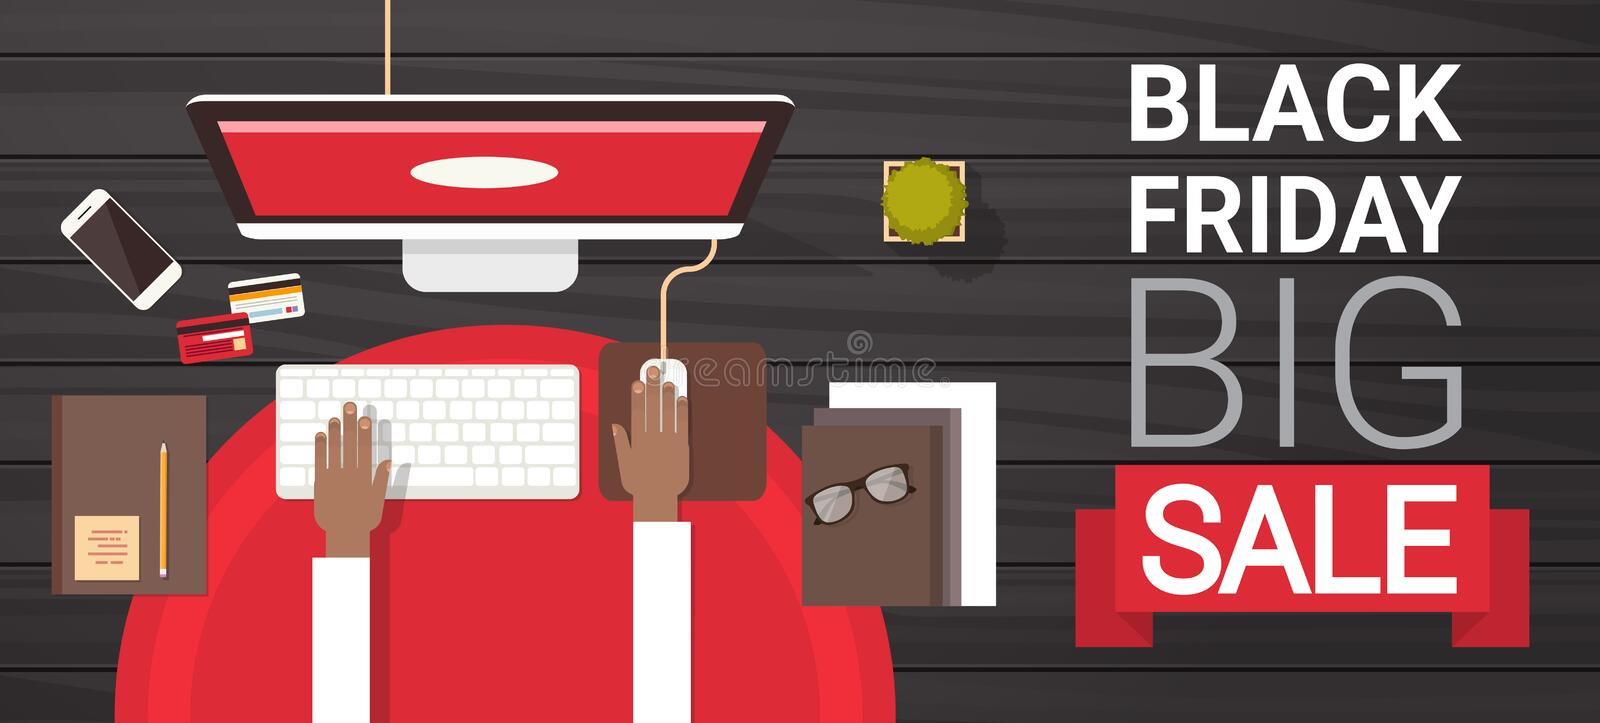 Black Friday Big Sale Sign Over Hand Typing On Computer Desktop Above View Holiday Discount Banner Concept royalty free illustration